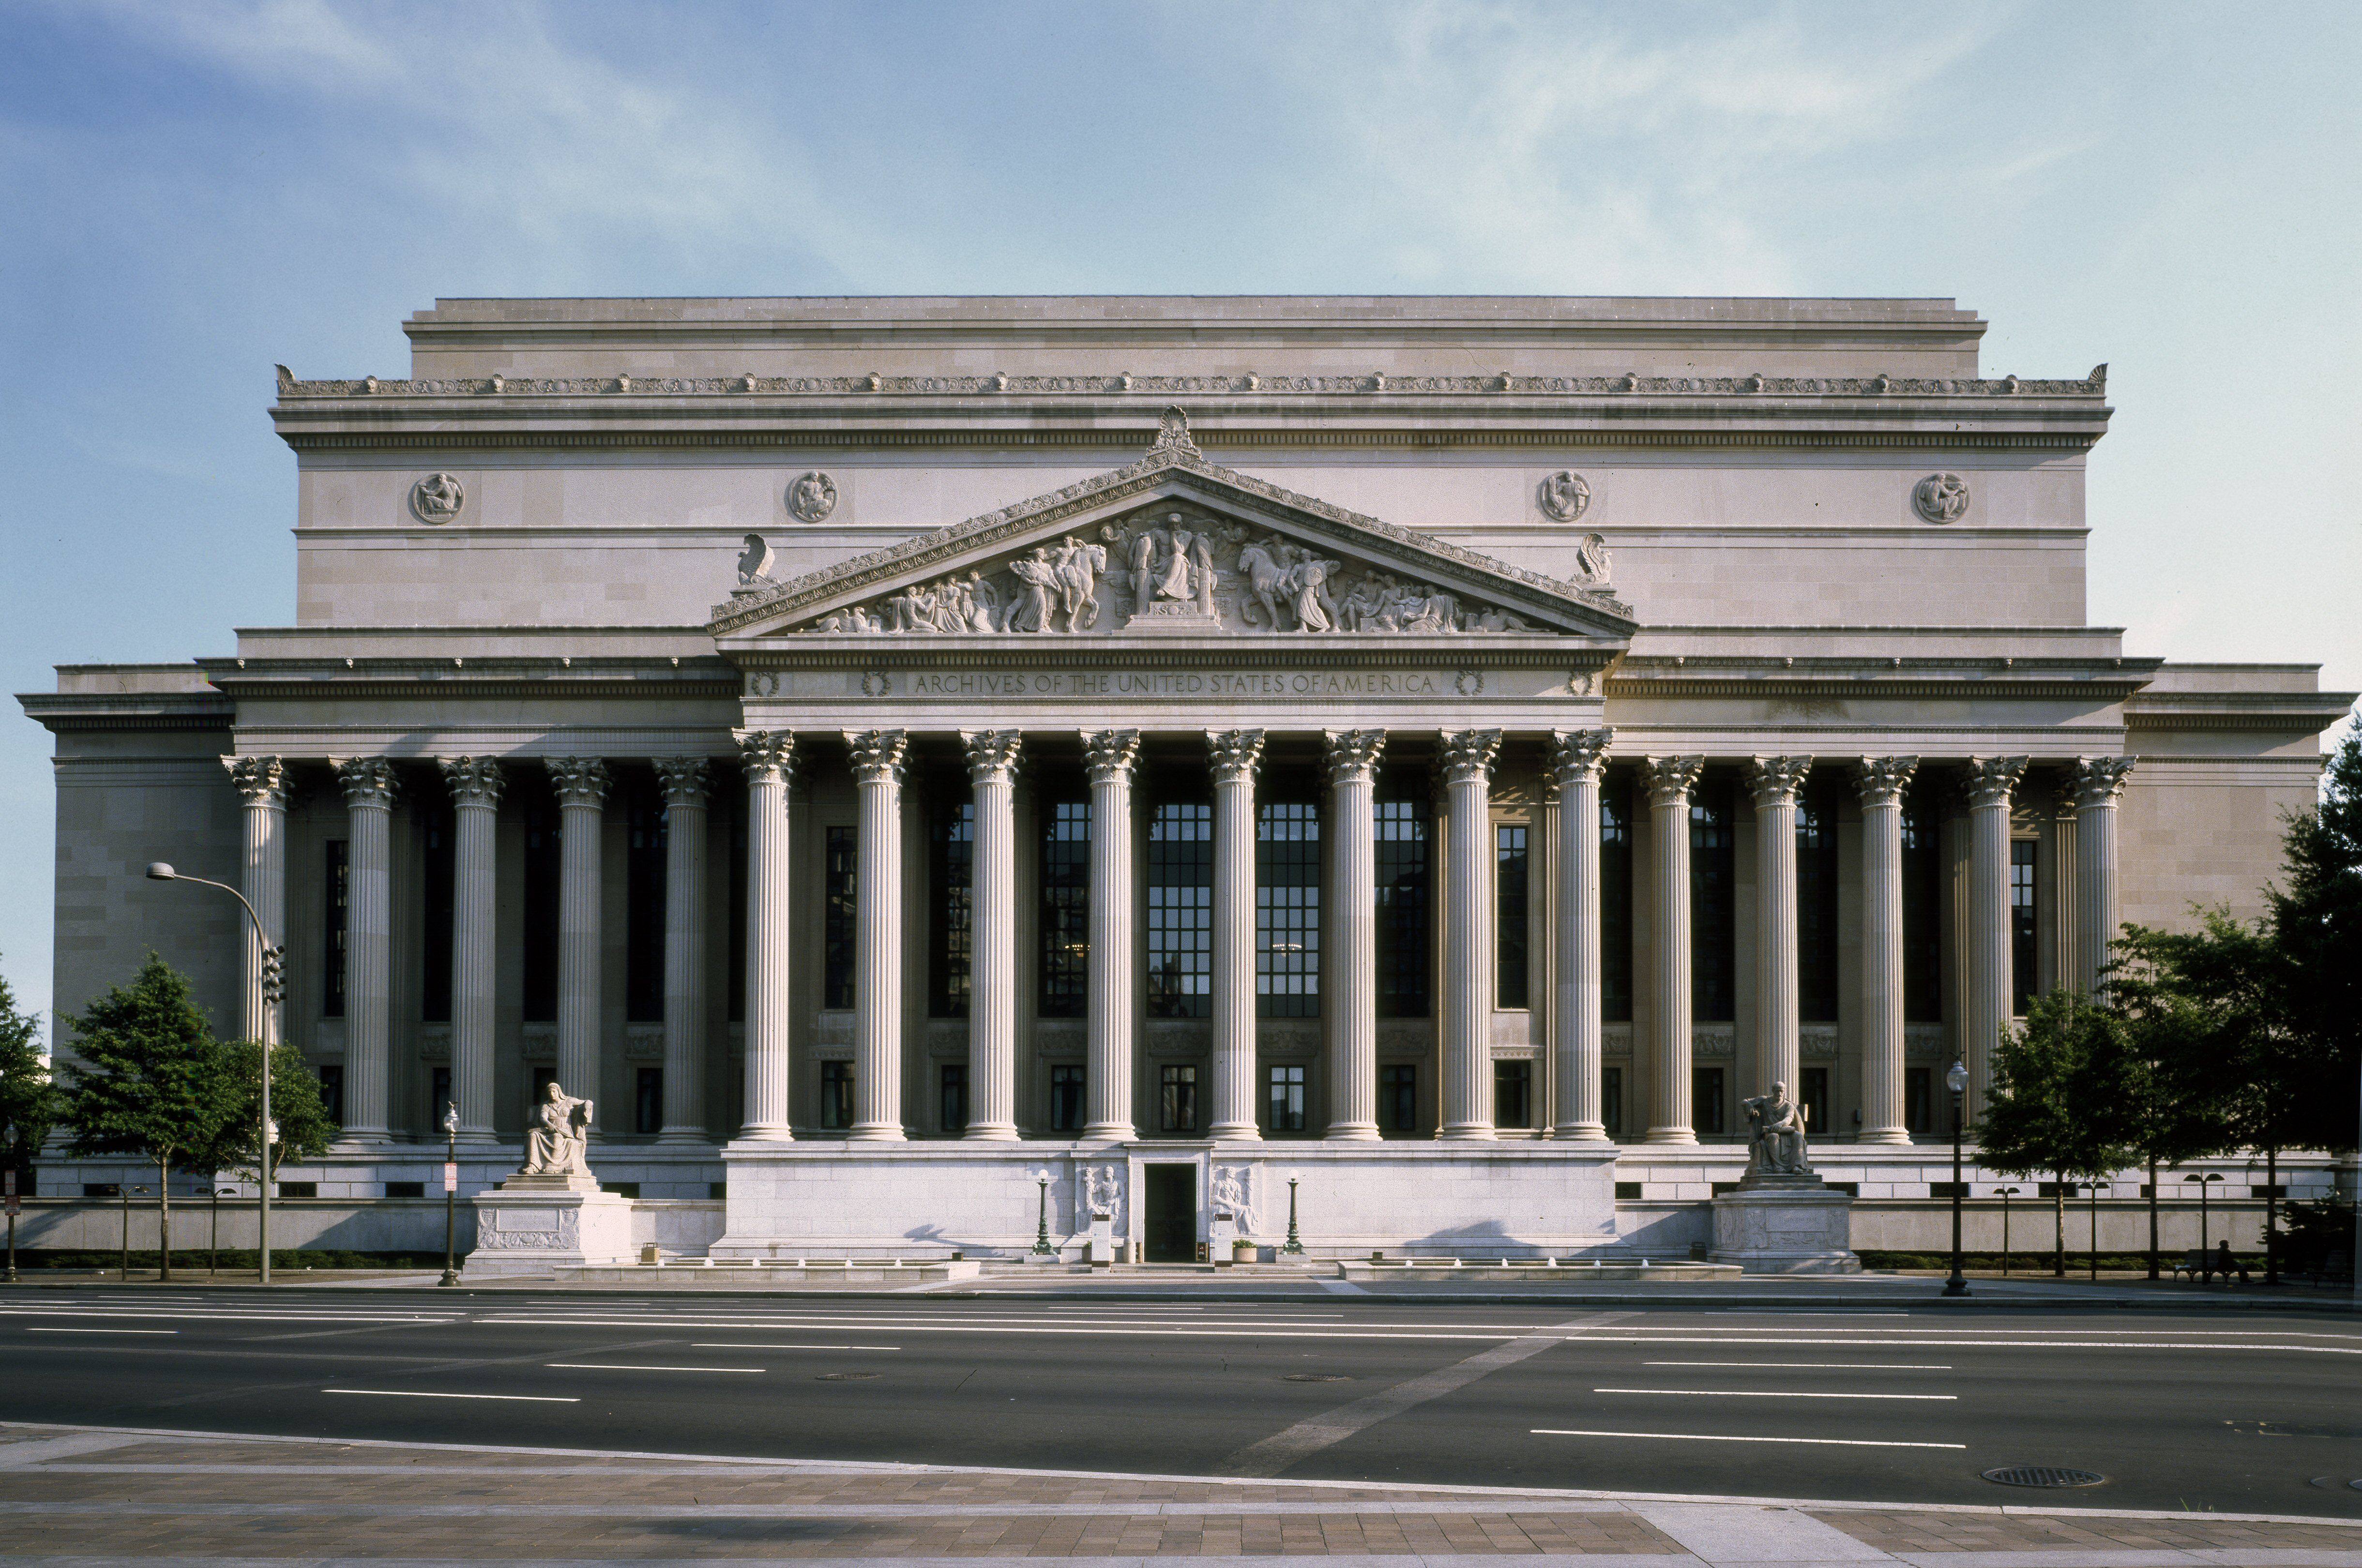 Pennsylvania Avenue View Of The National Archives Building Washington Dc